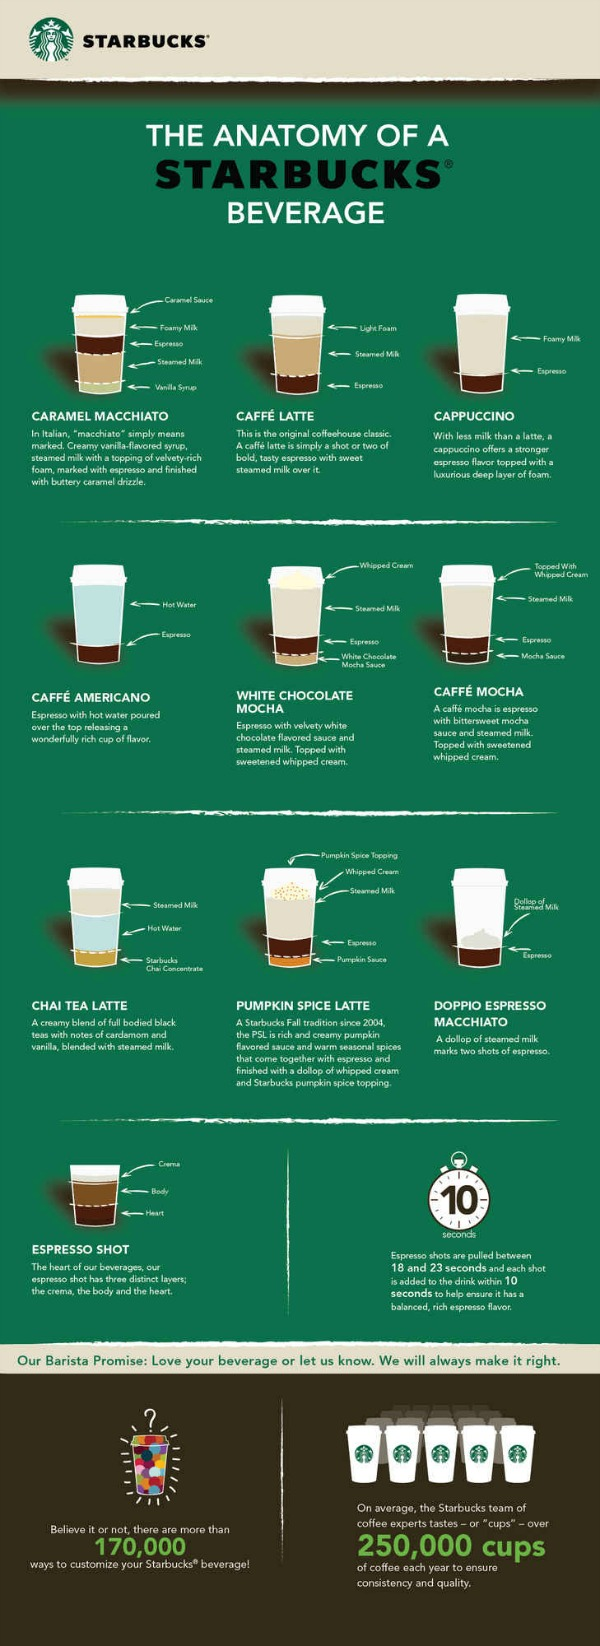 starbucks-ingredients